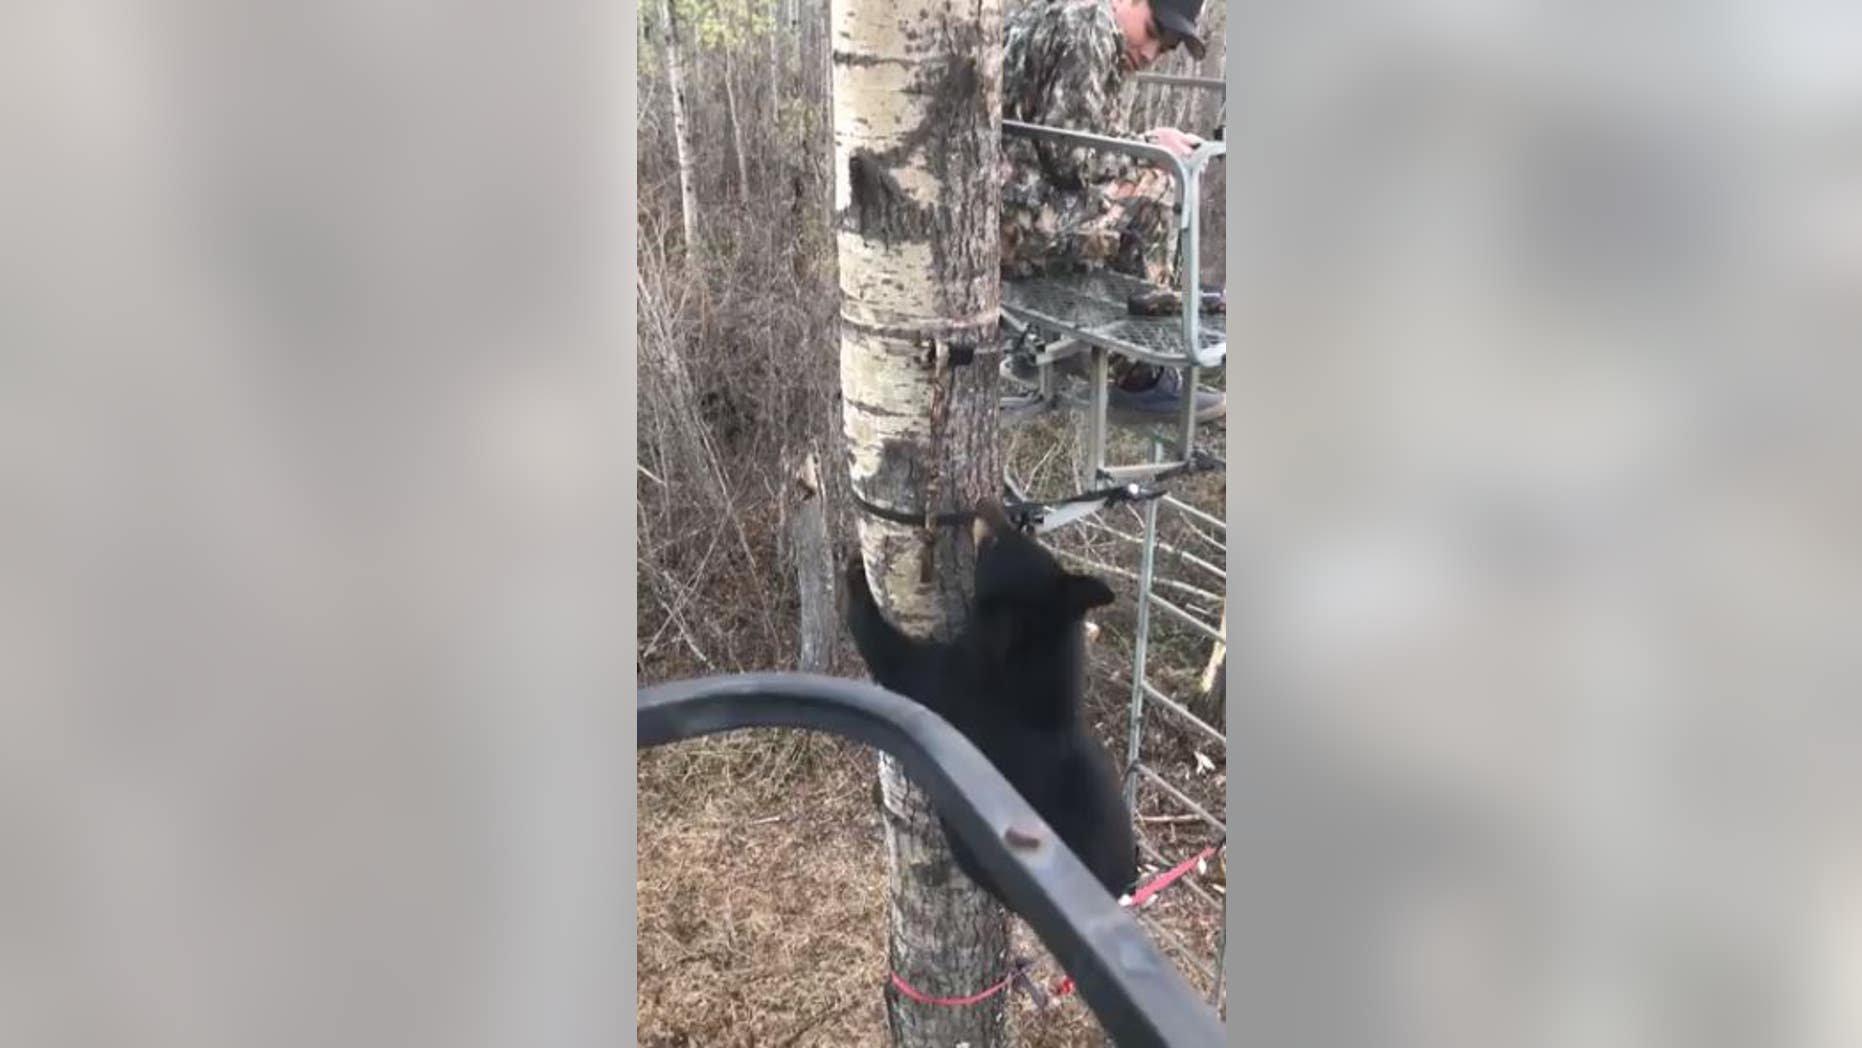 A video has gone viral of a teenager keeping his composure while a curious cub climbs up to investigate.